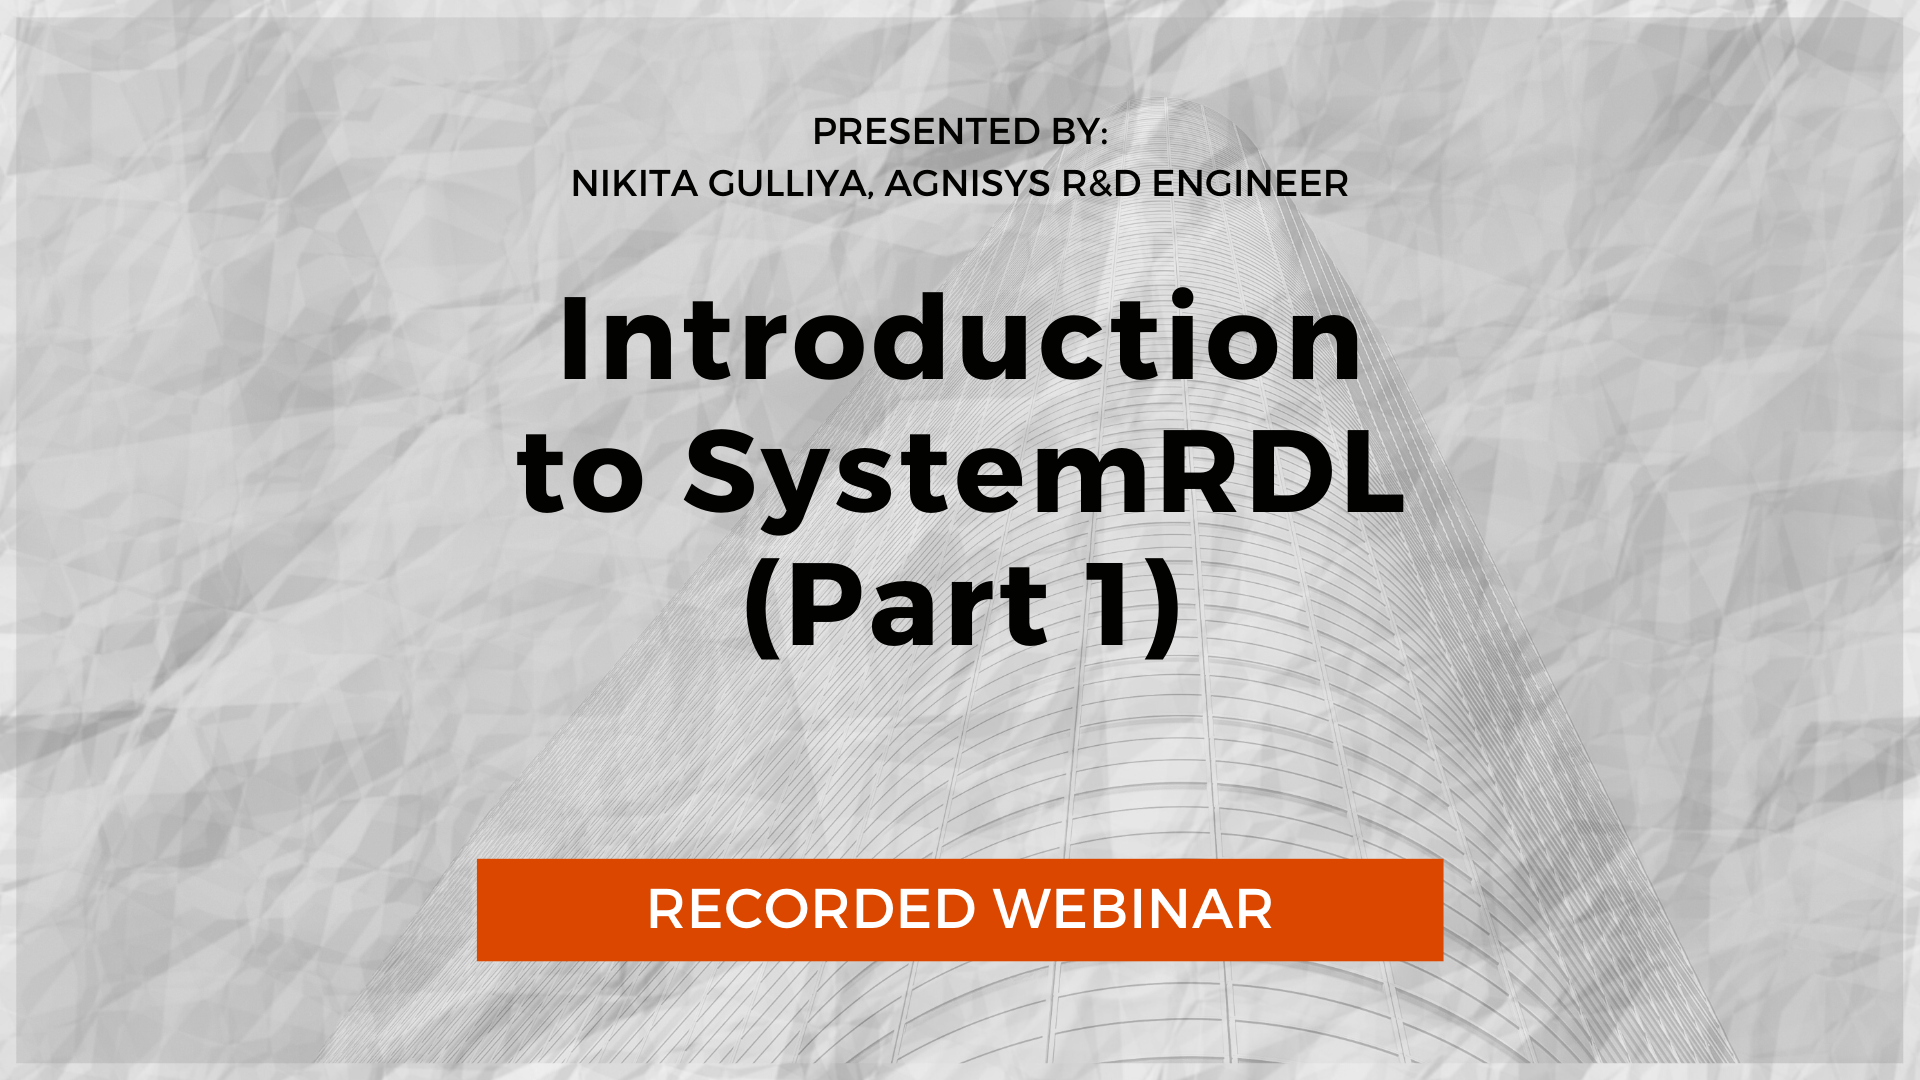 Recorded Webinar-Introduction to SystemRDL Part-1